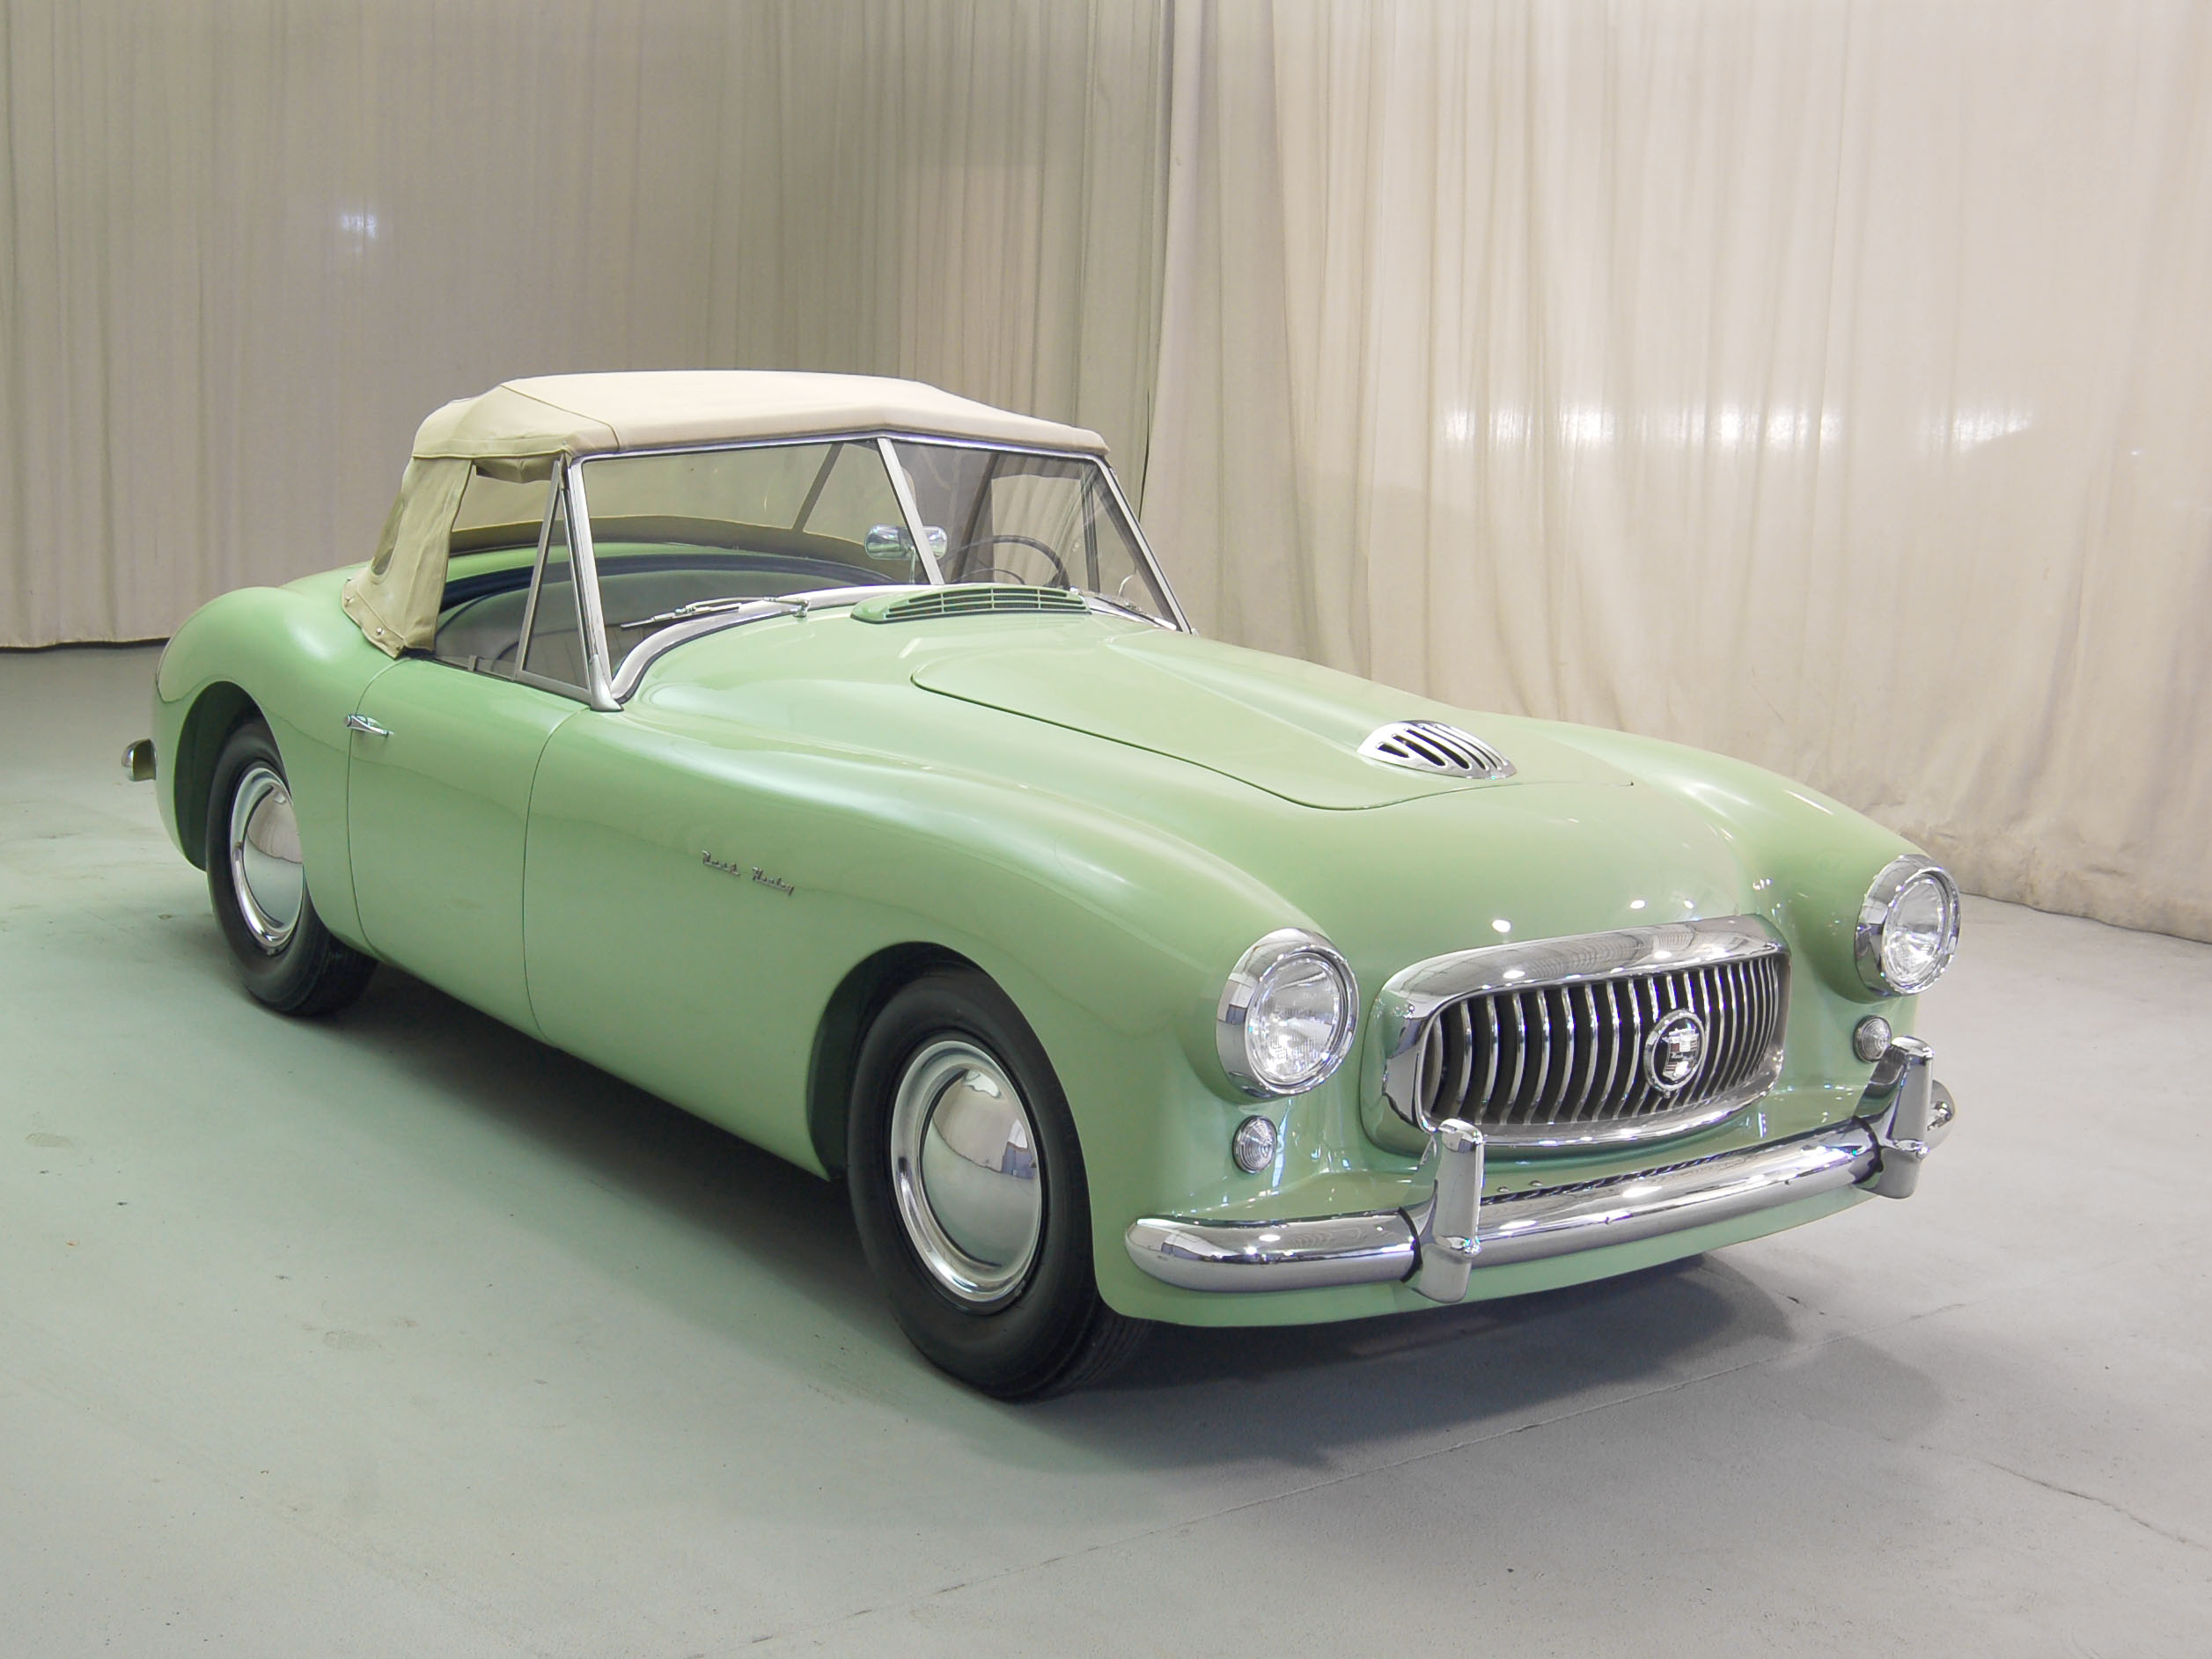 1951 Nash-Healey Roadster